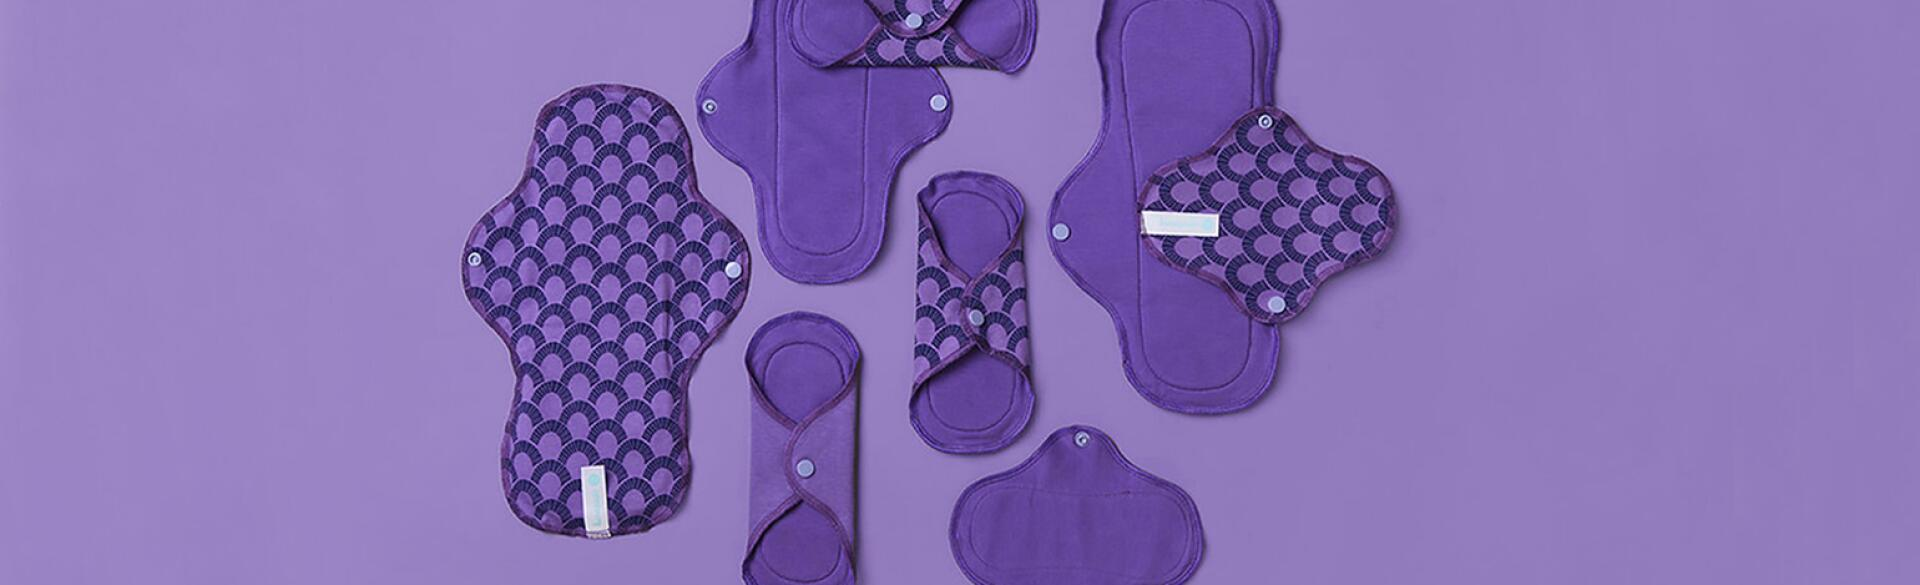 array of purple pads on purple background